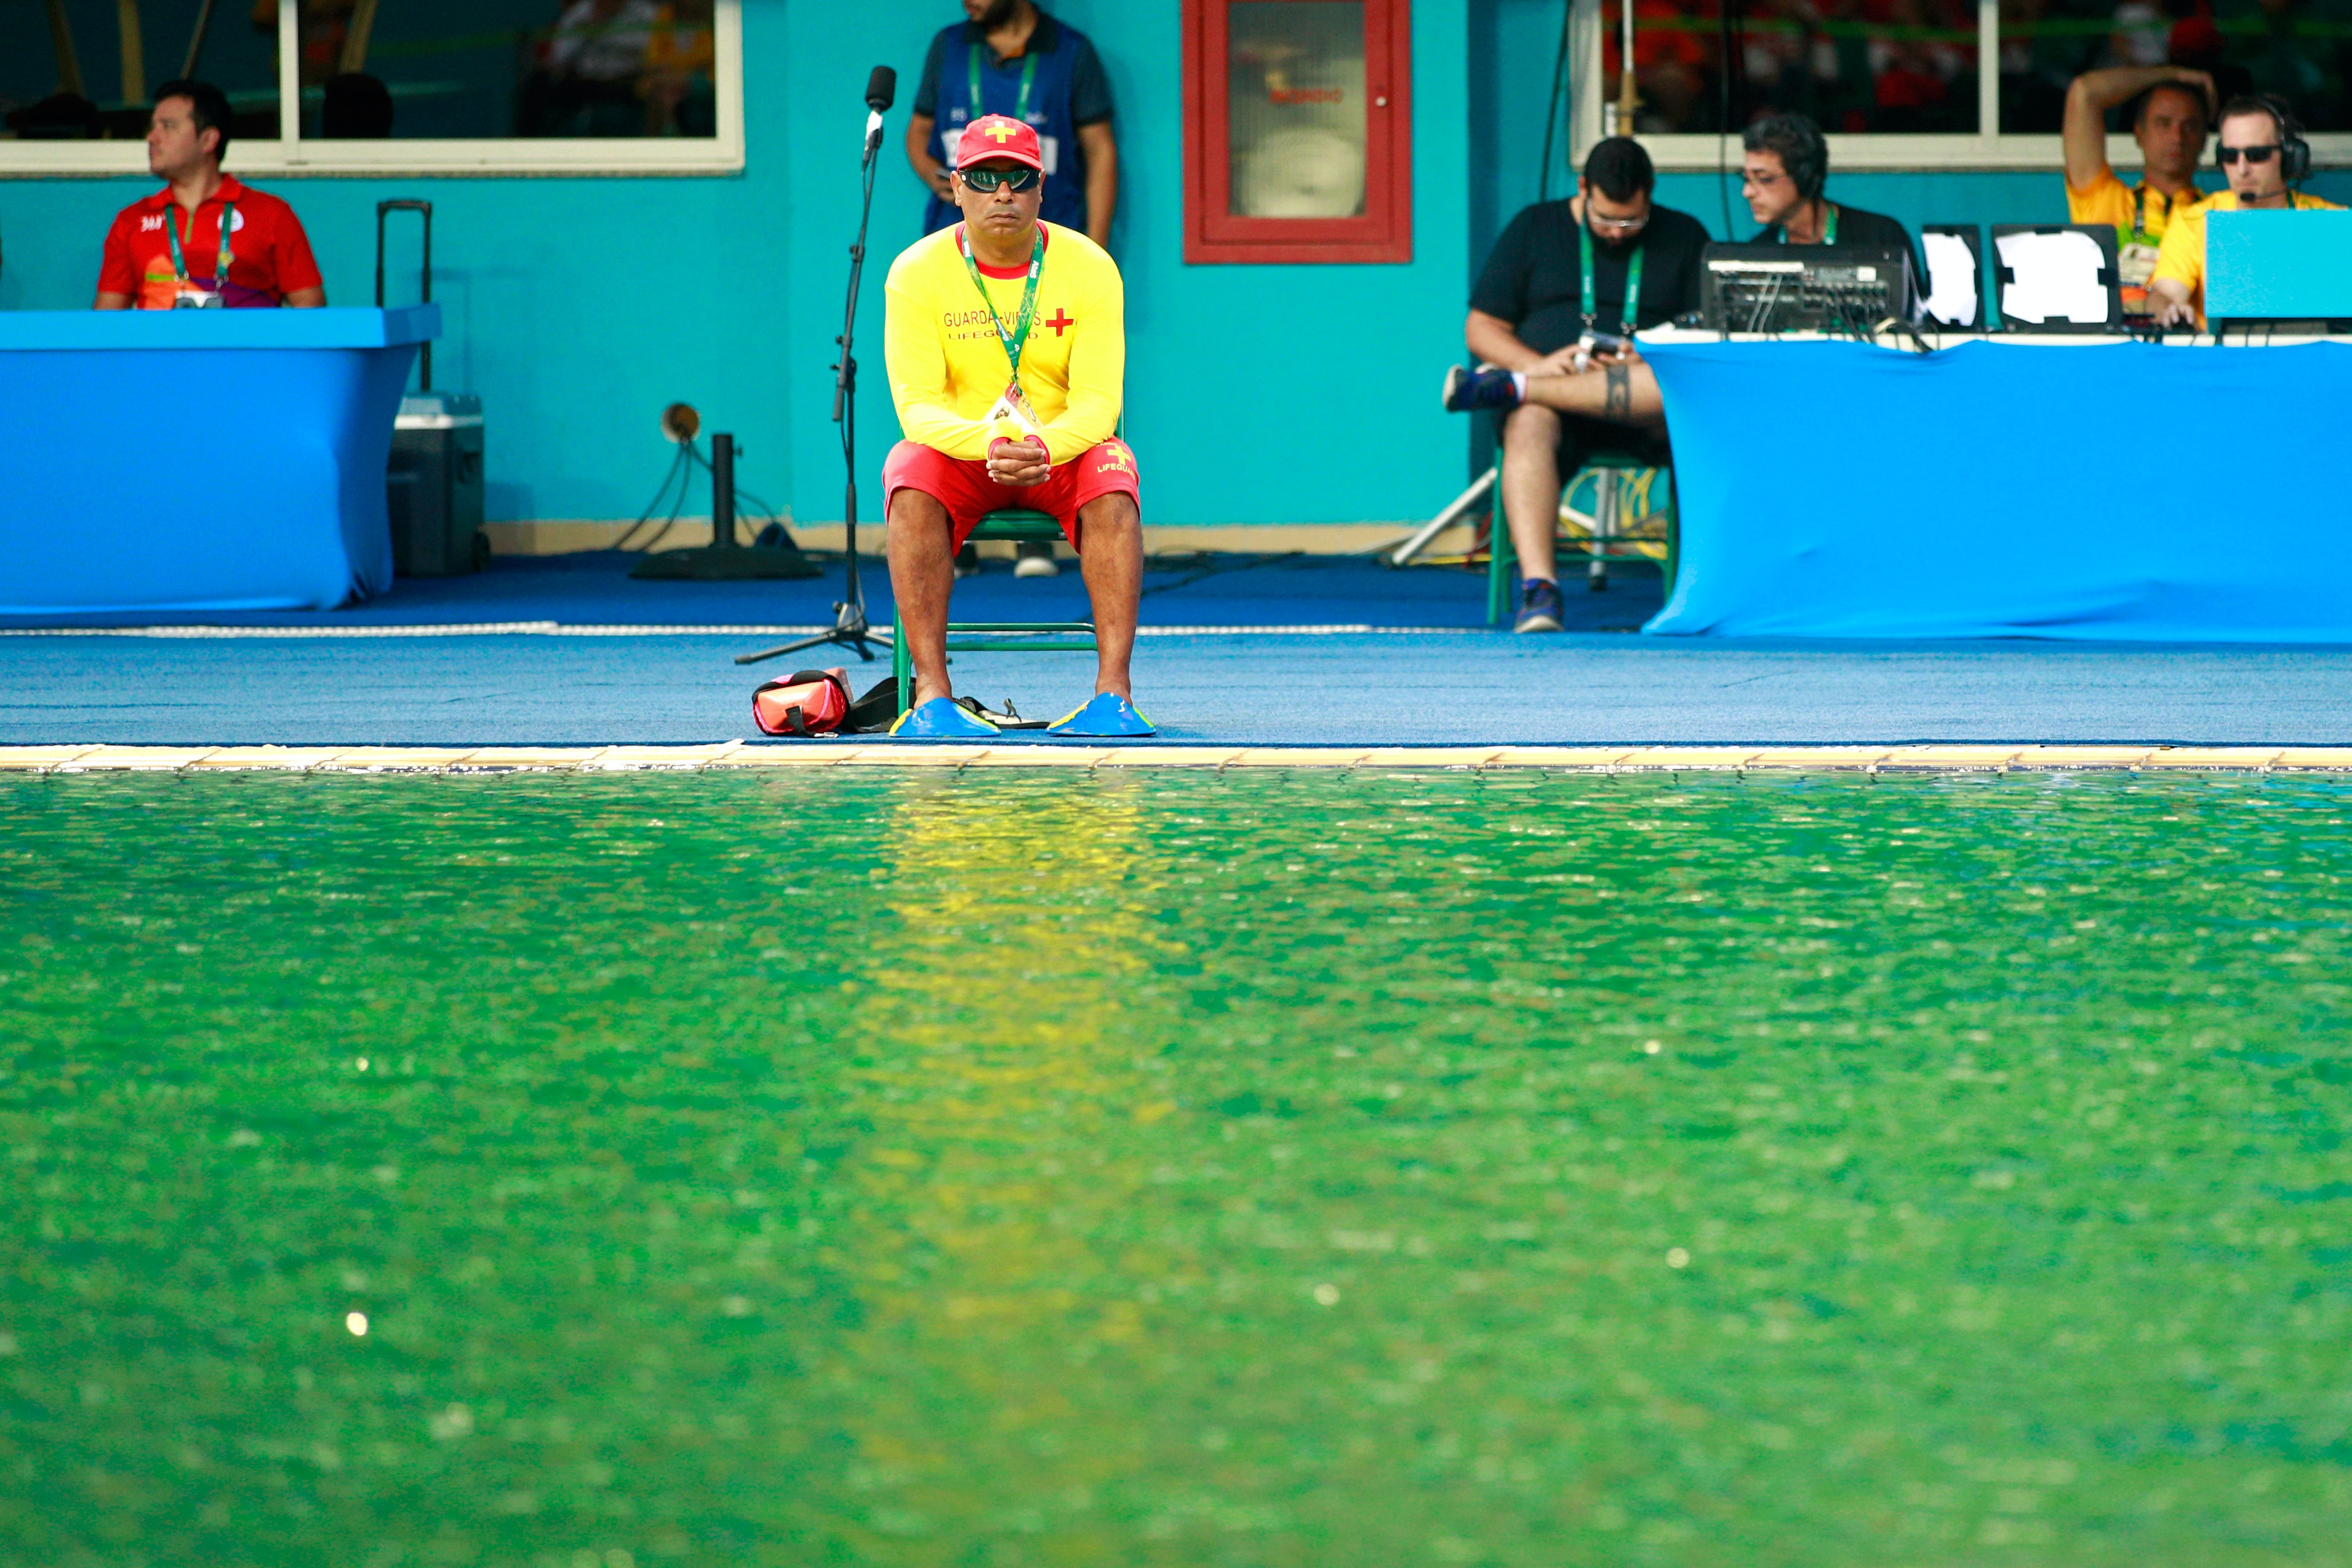 A lifeguard sits by the edge of the diving pool during the Women's Diving Synchronised 10m Platform Final.